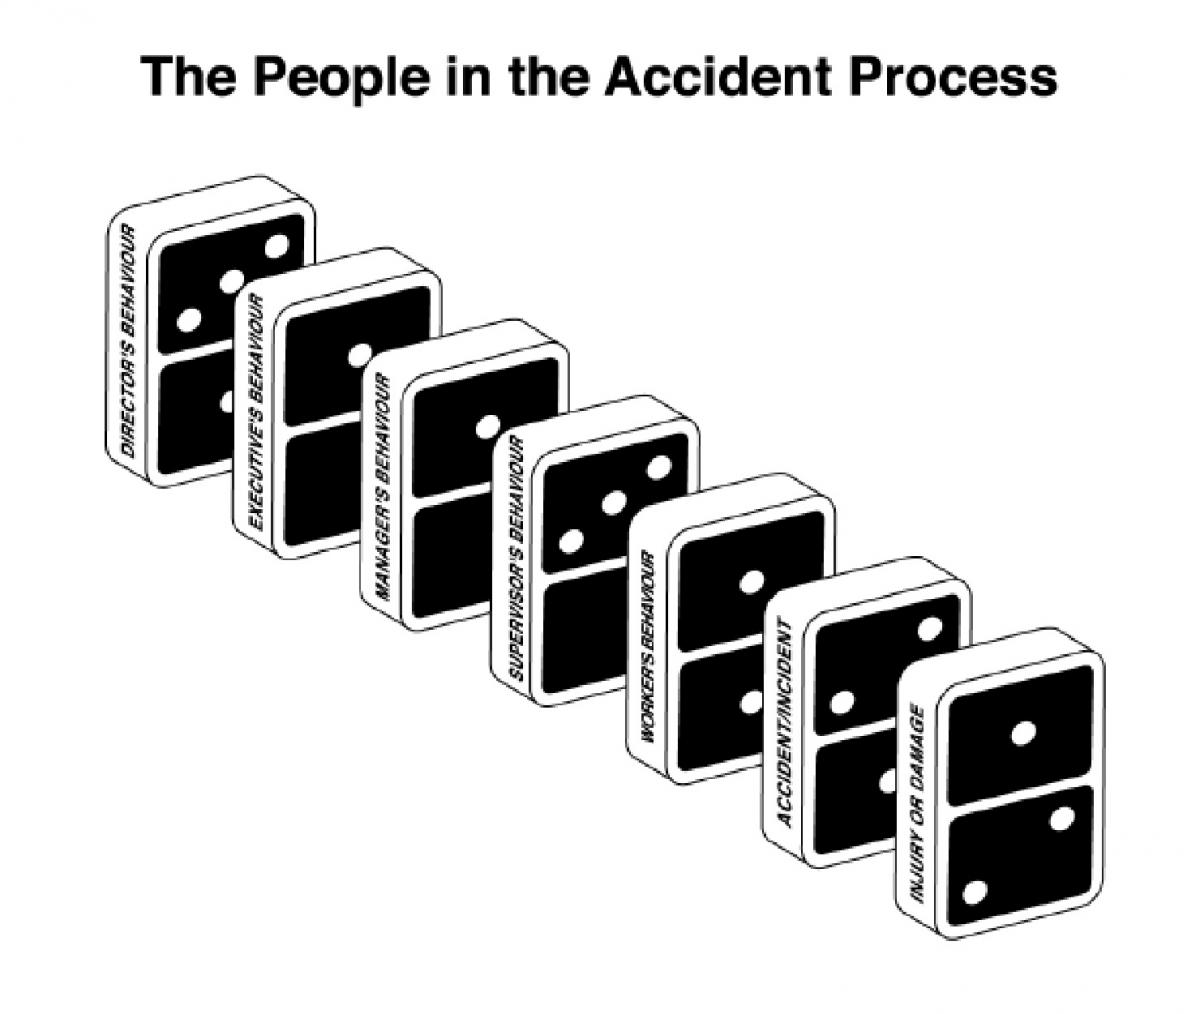 diagram of accident for accidents